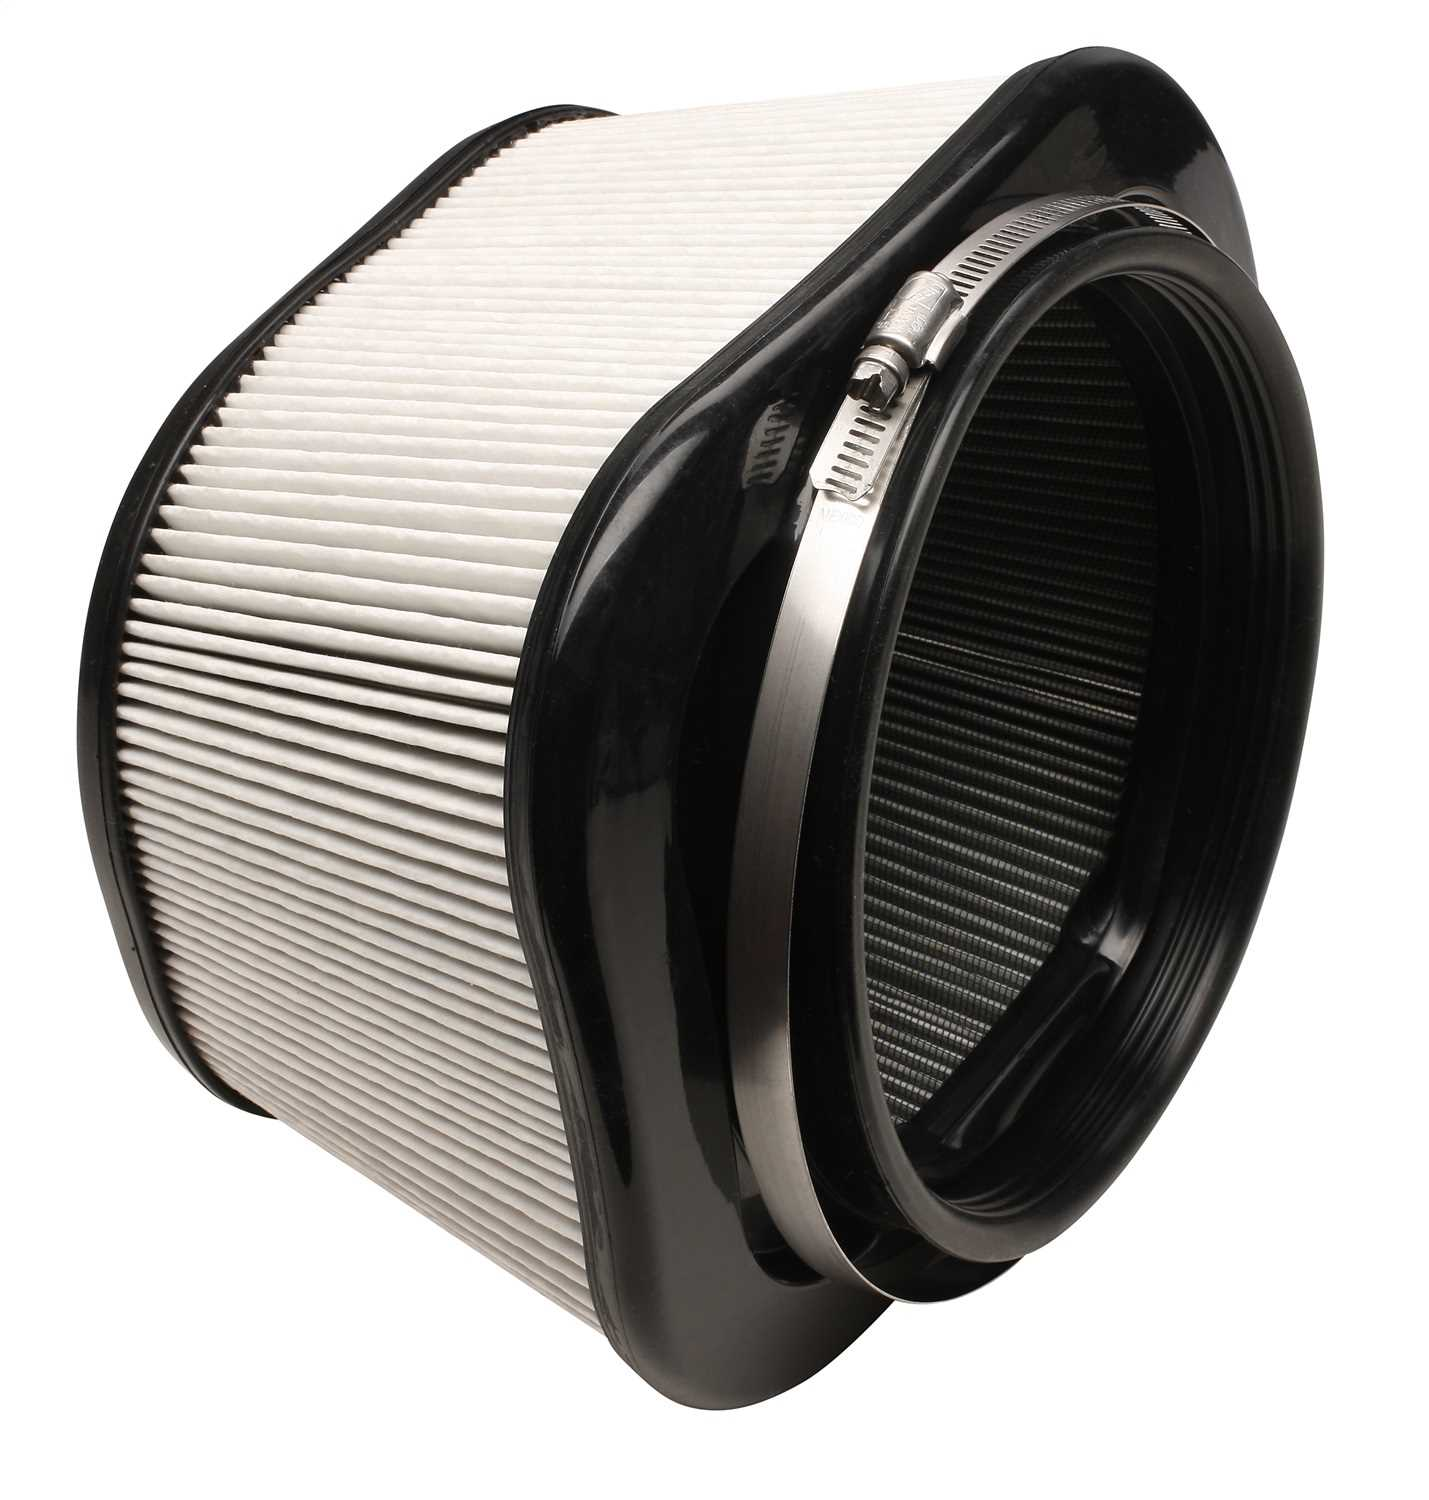 88000-D Edge Products Jammer Filter Wrap Covers